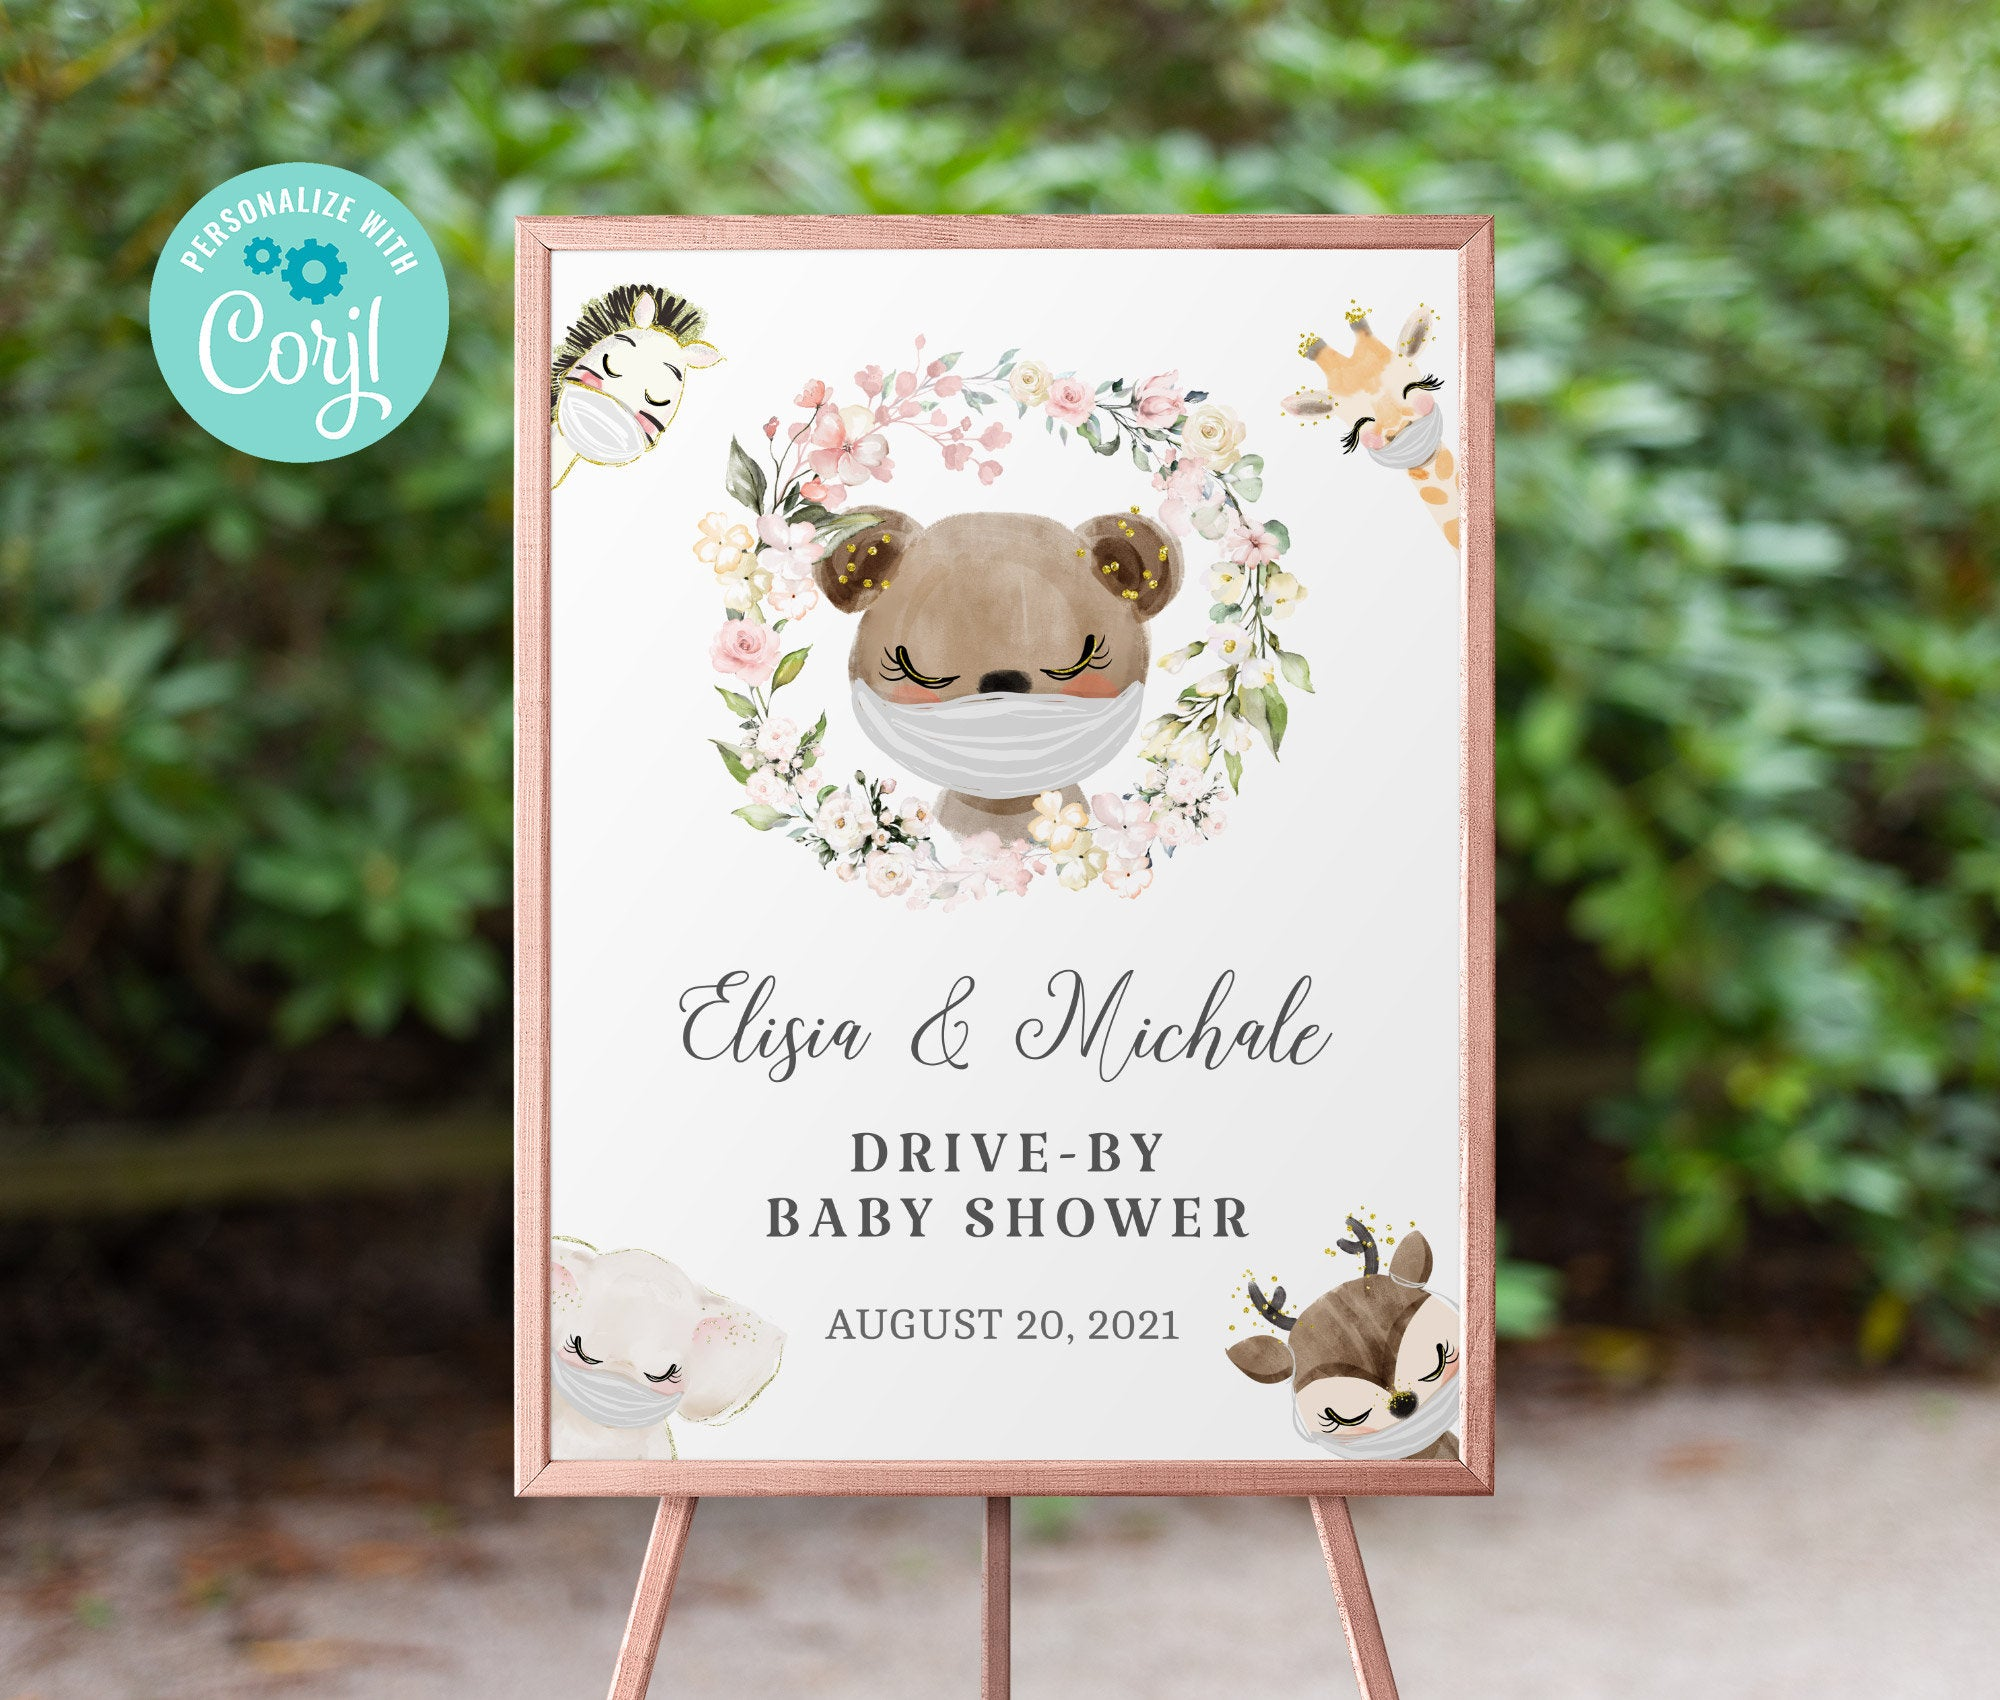 Drive By Baby Shower Welcome Sign Printable •  Bear Editable Sign • Quarantine Baby Animals • Social Distancing Party • Instant BS3601